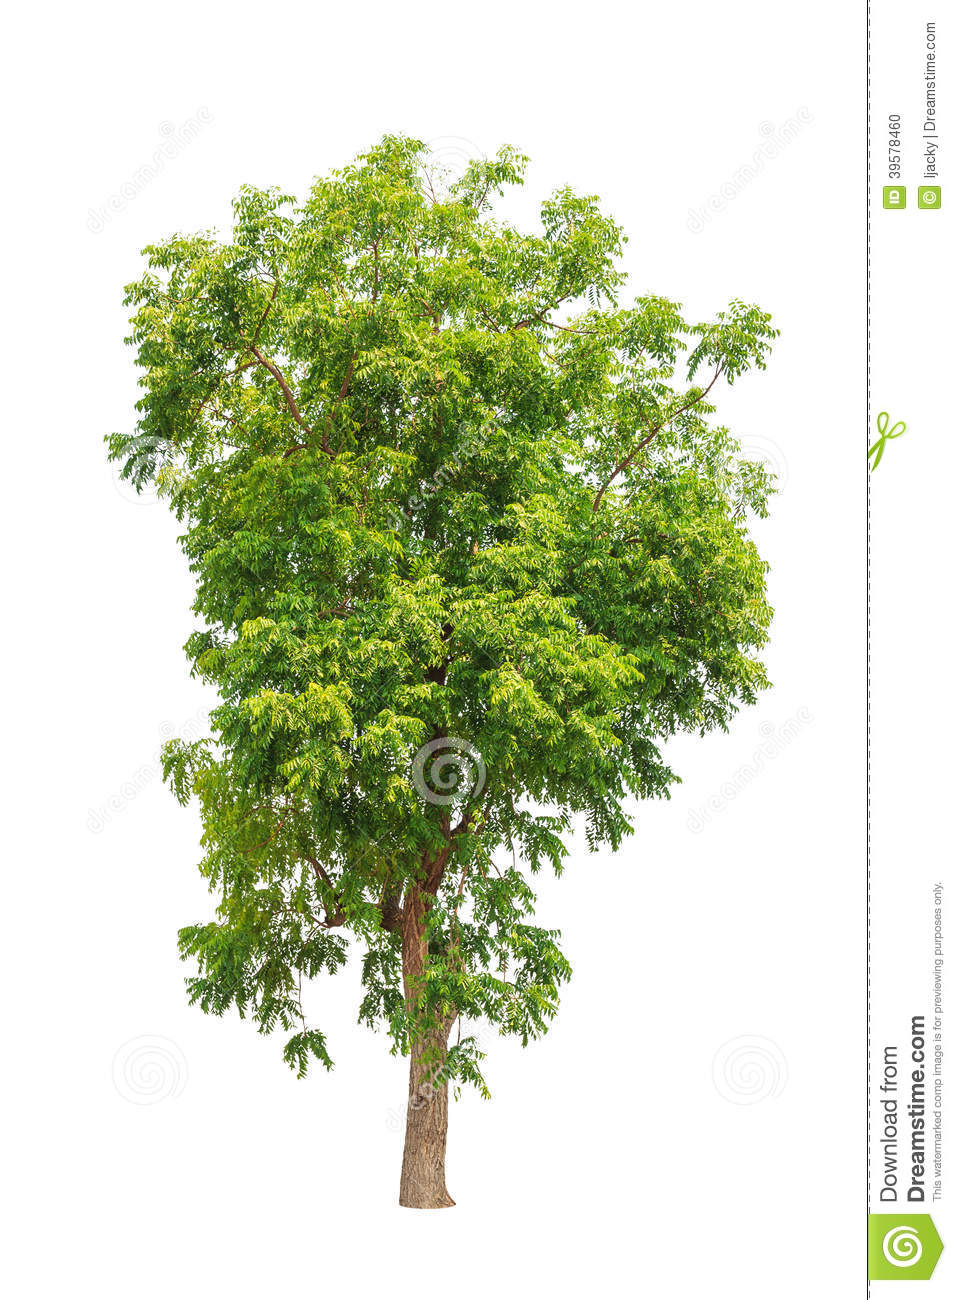 Neem Tree Clipart 6 Clipart Station